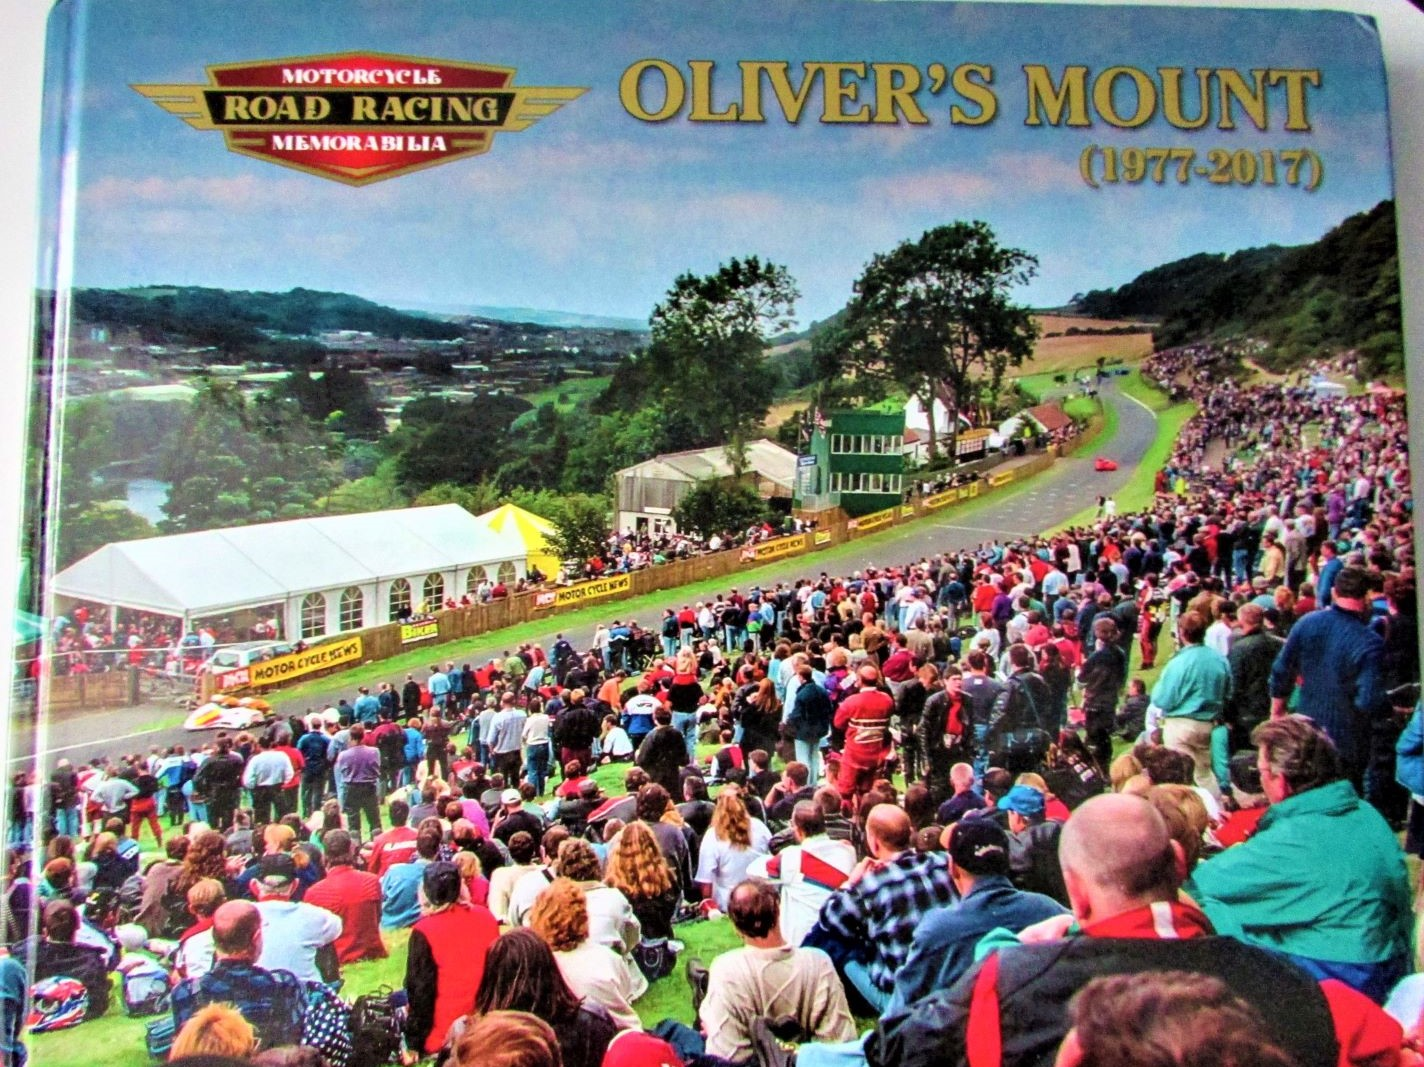 Oliver's Mount 1977-2017 Book Review